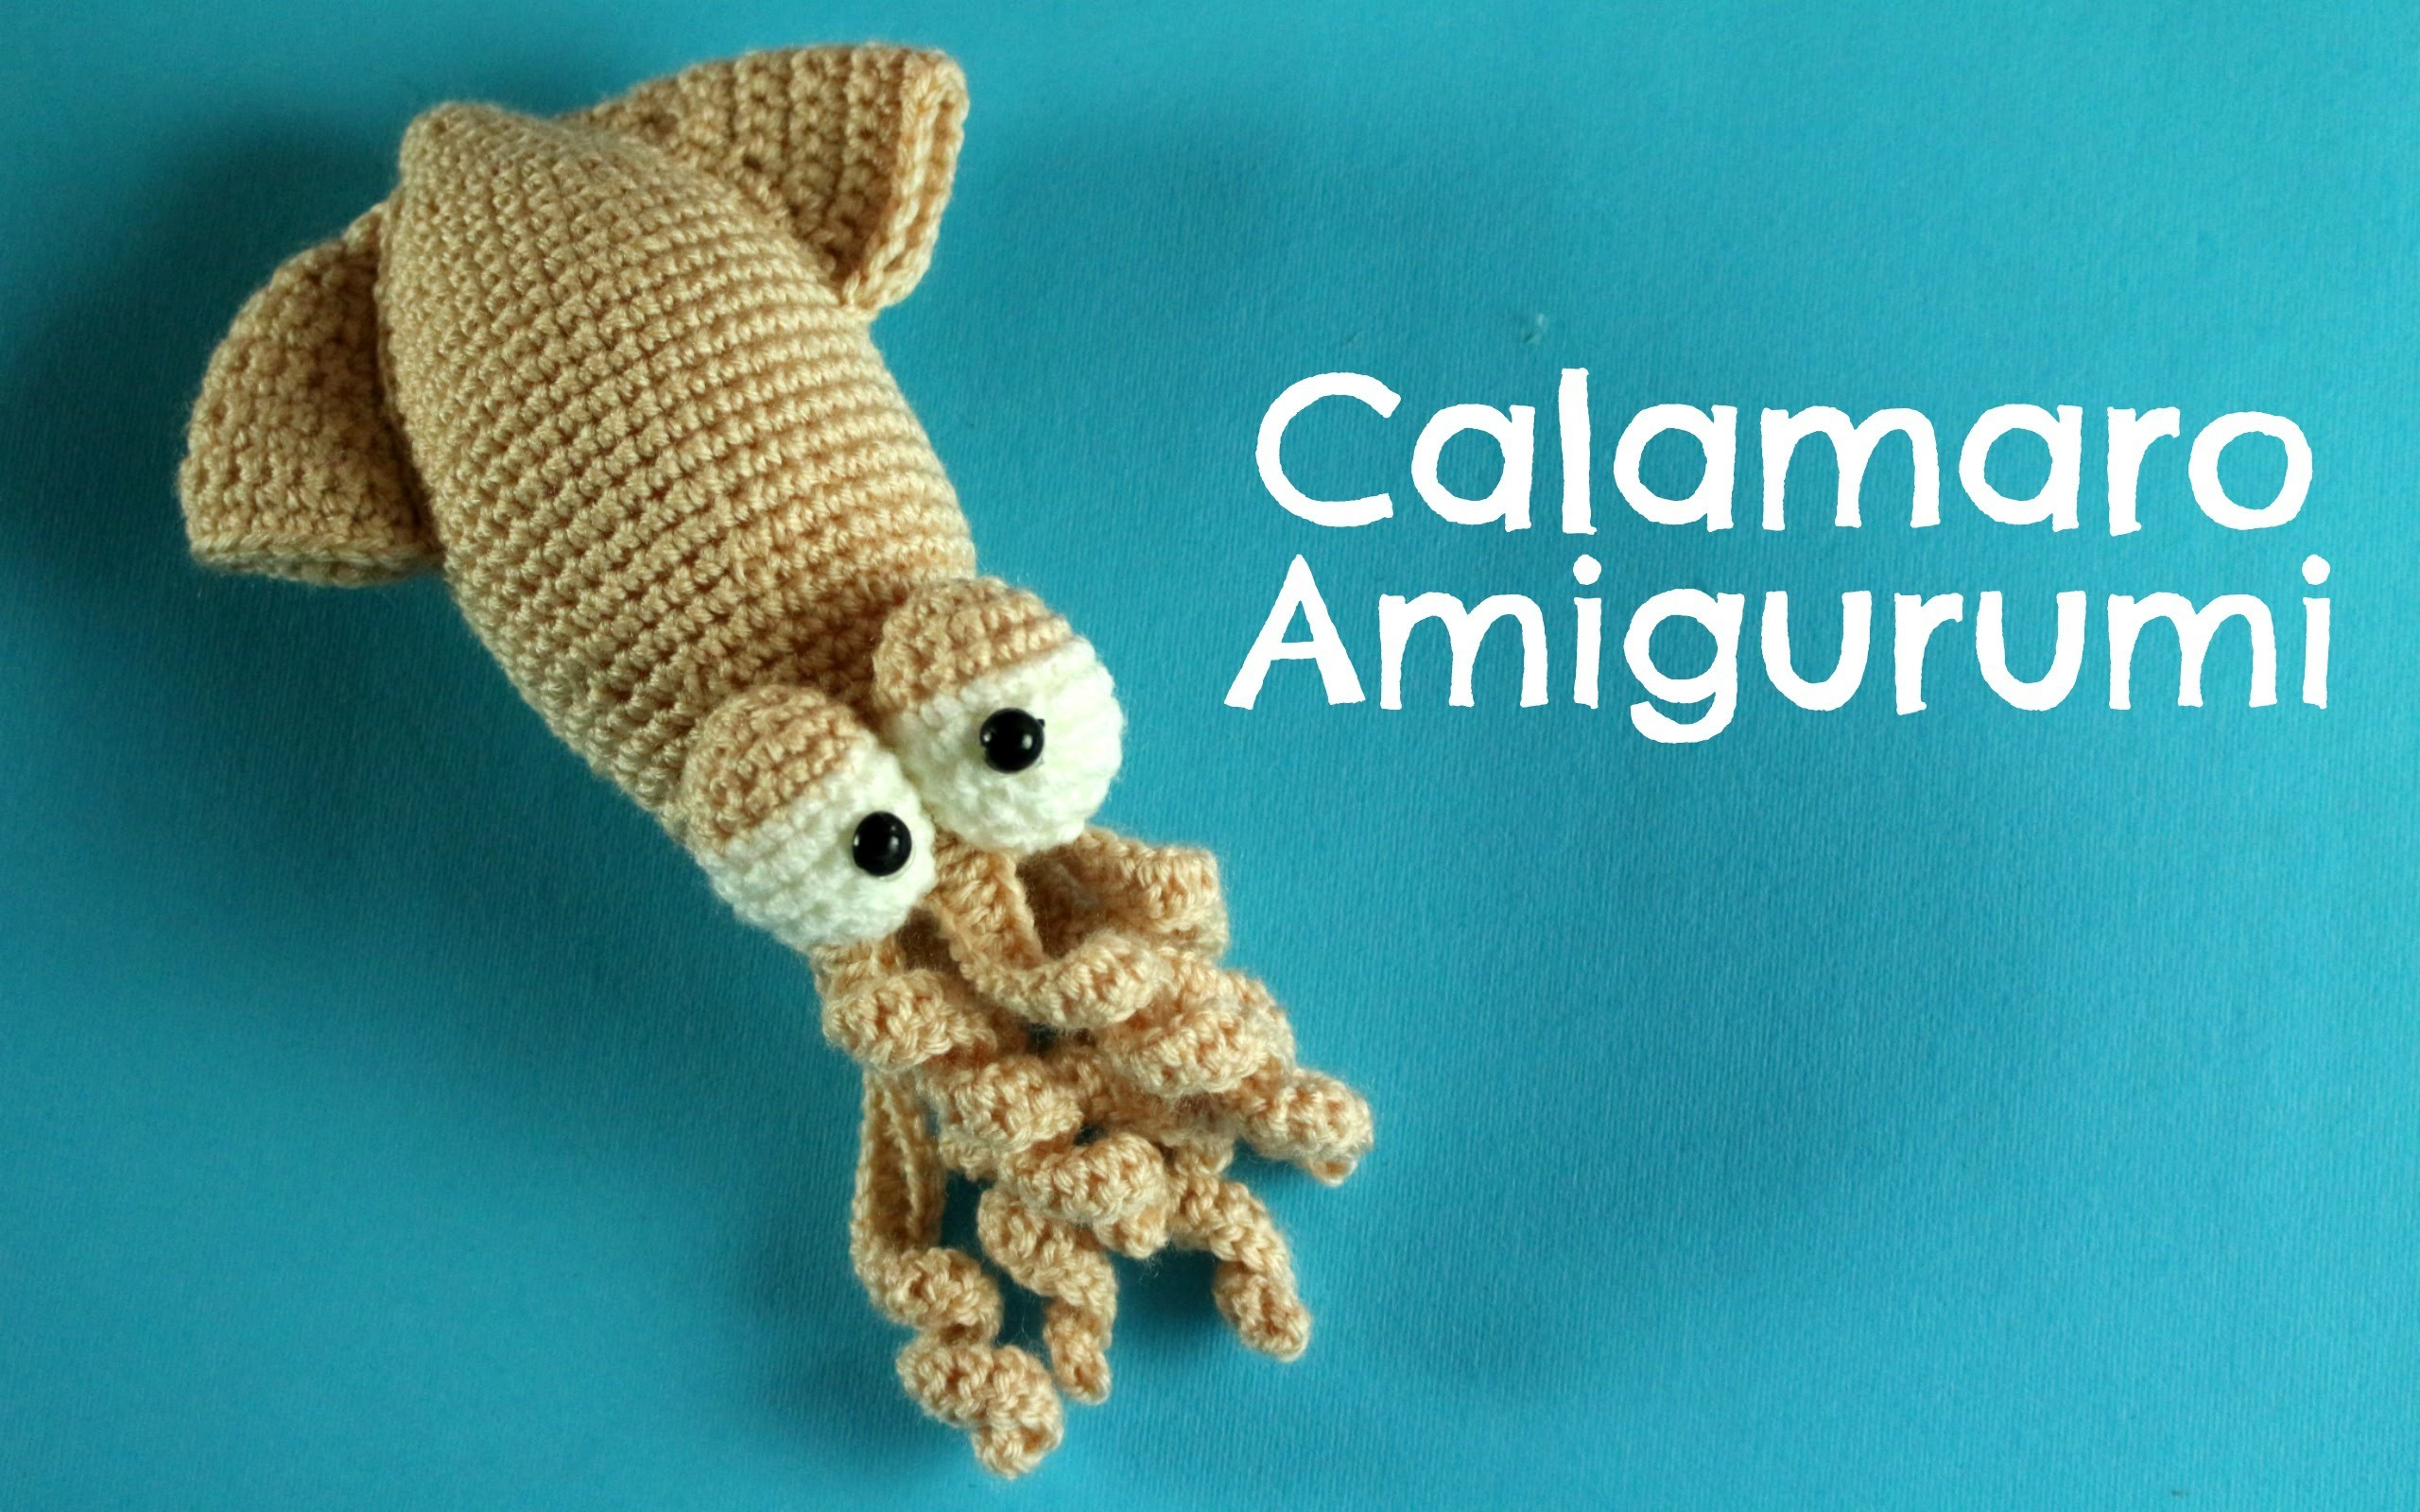 World Of Amigurumi : Calamaro Amigurumi, World Of Amigurumi, My Crafts and DIY ...